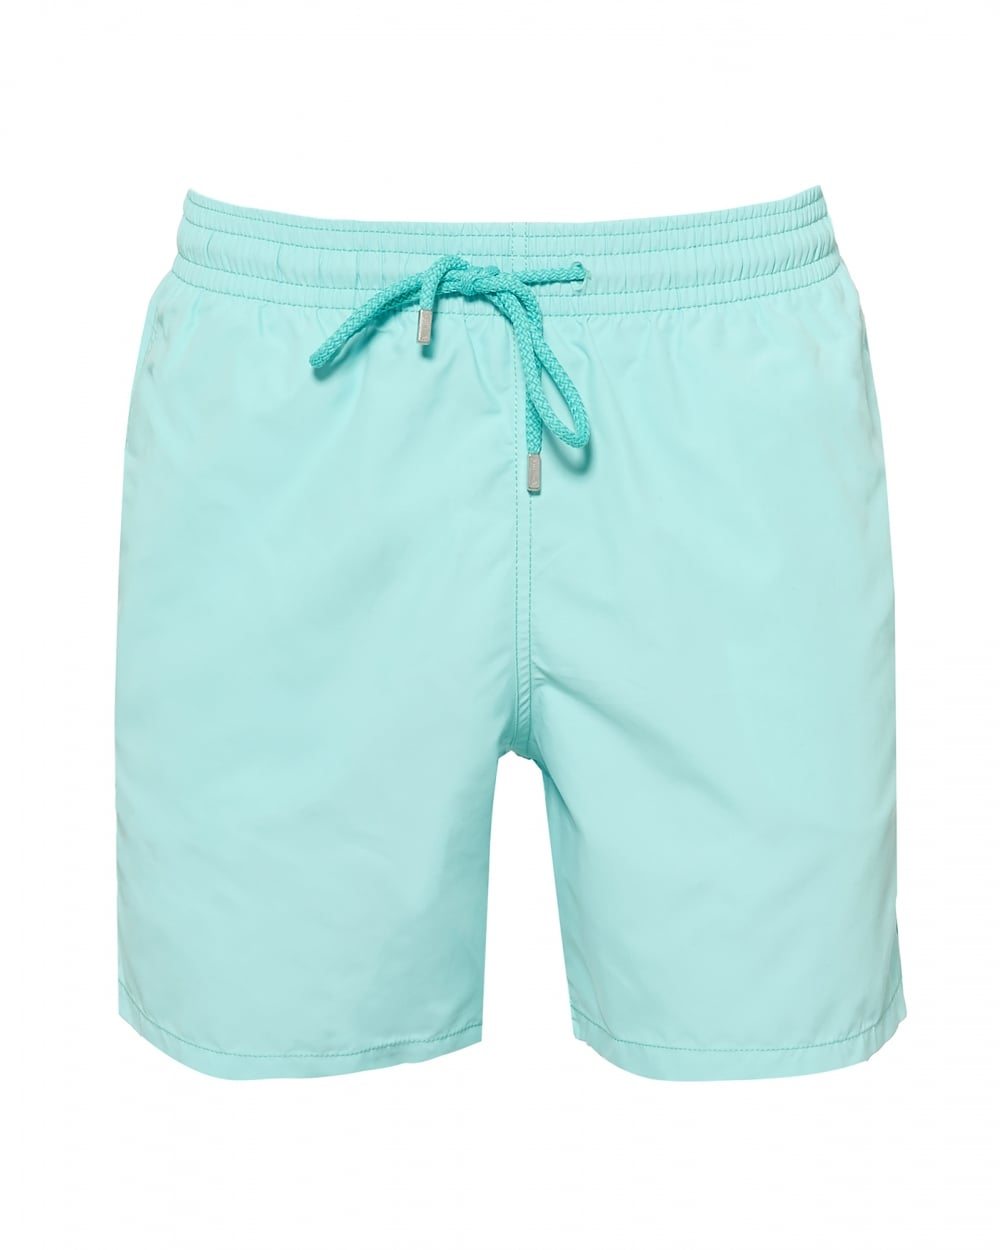 cd19f7d5ff Mens Moorea Plain Swimshorts, Lagoon Green Swimming Trunks